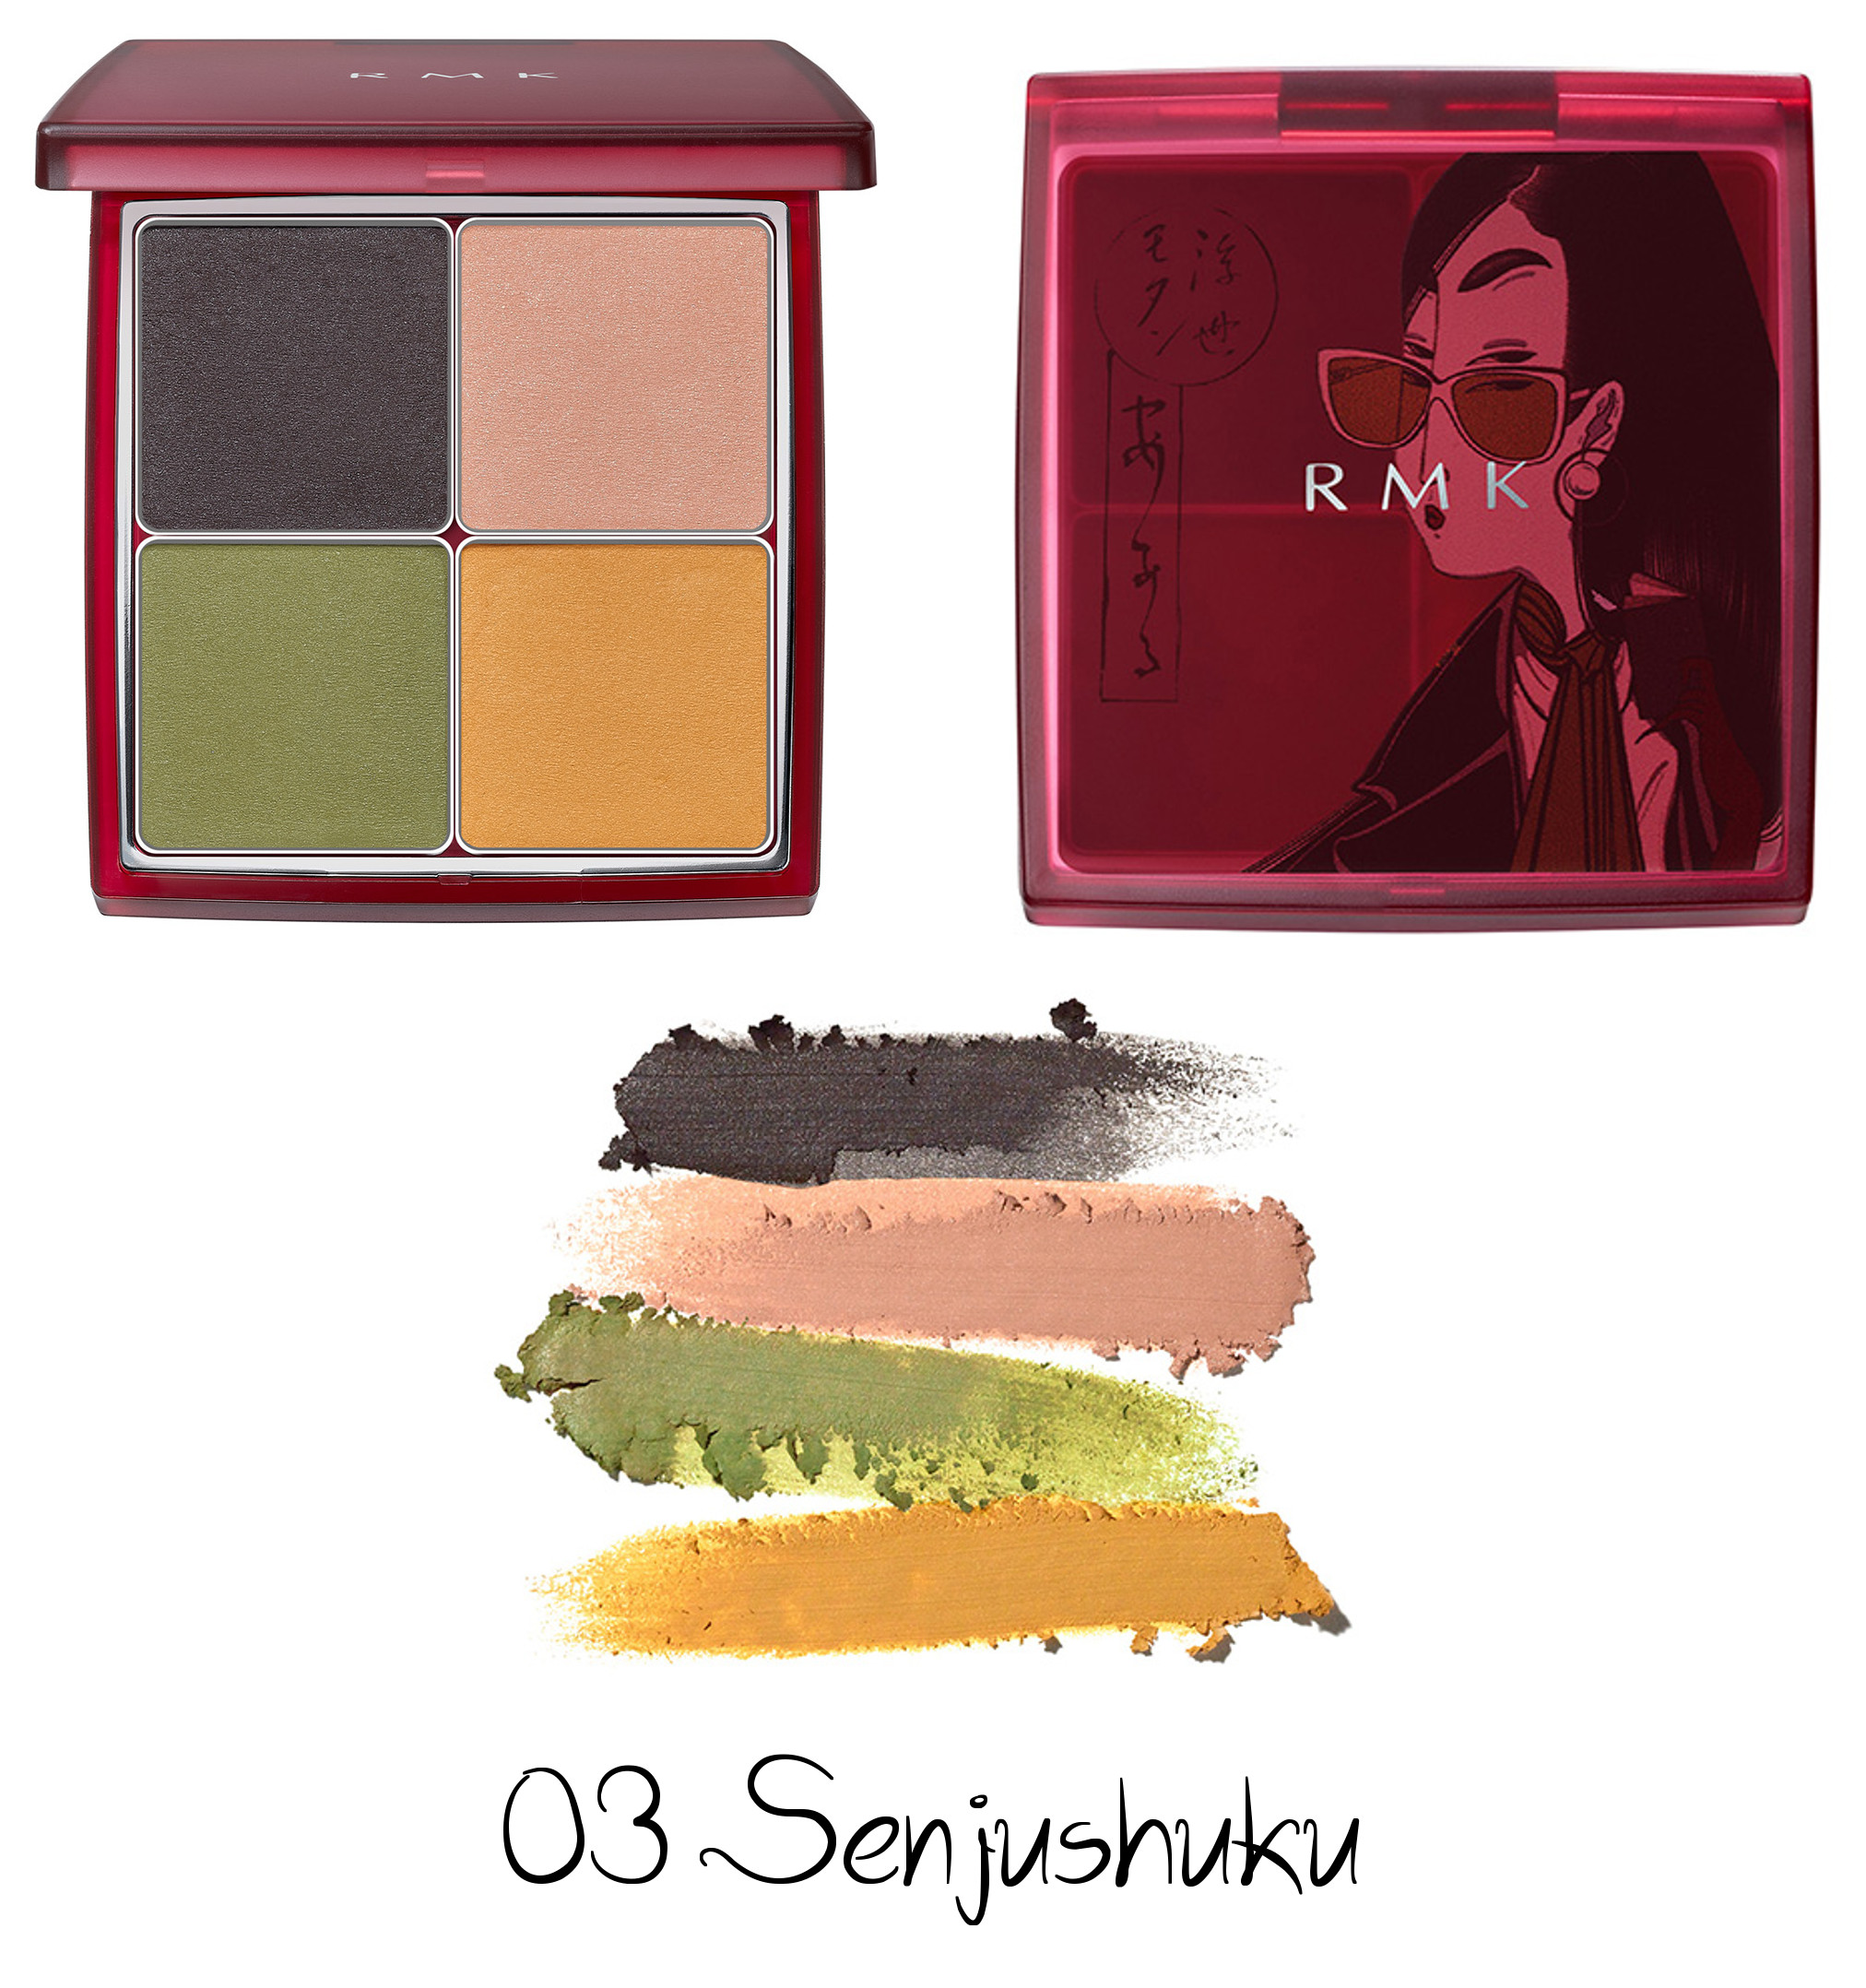 RMK Autumn Winter Collection 2020 Ukiyo Modern Eyeshadow Palette 03 Senjushuku